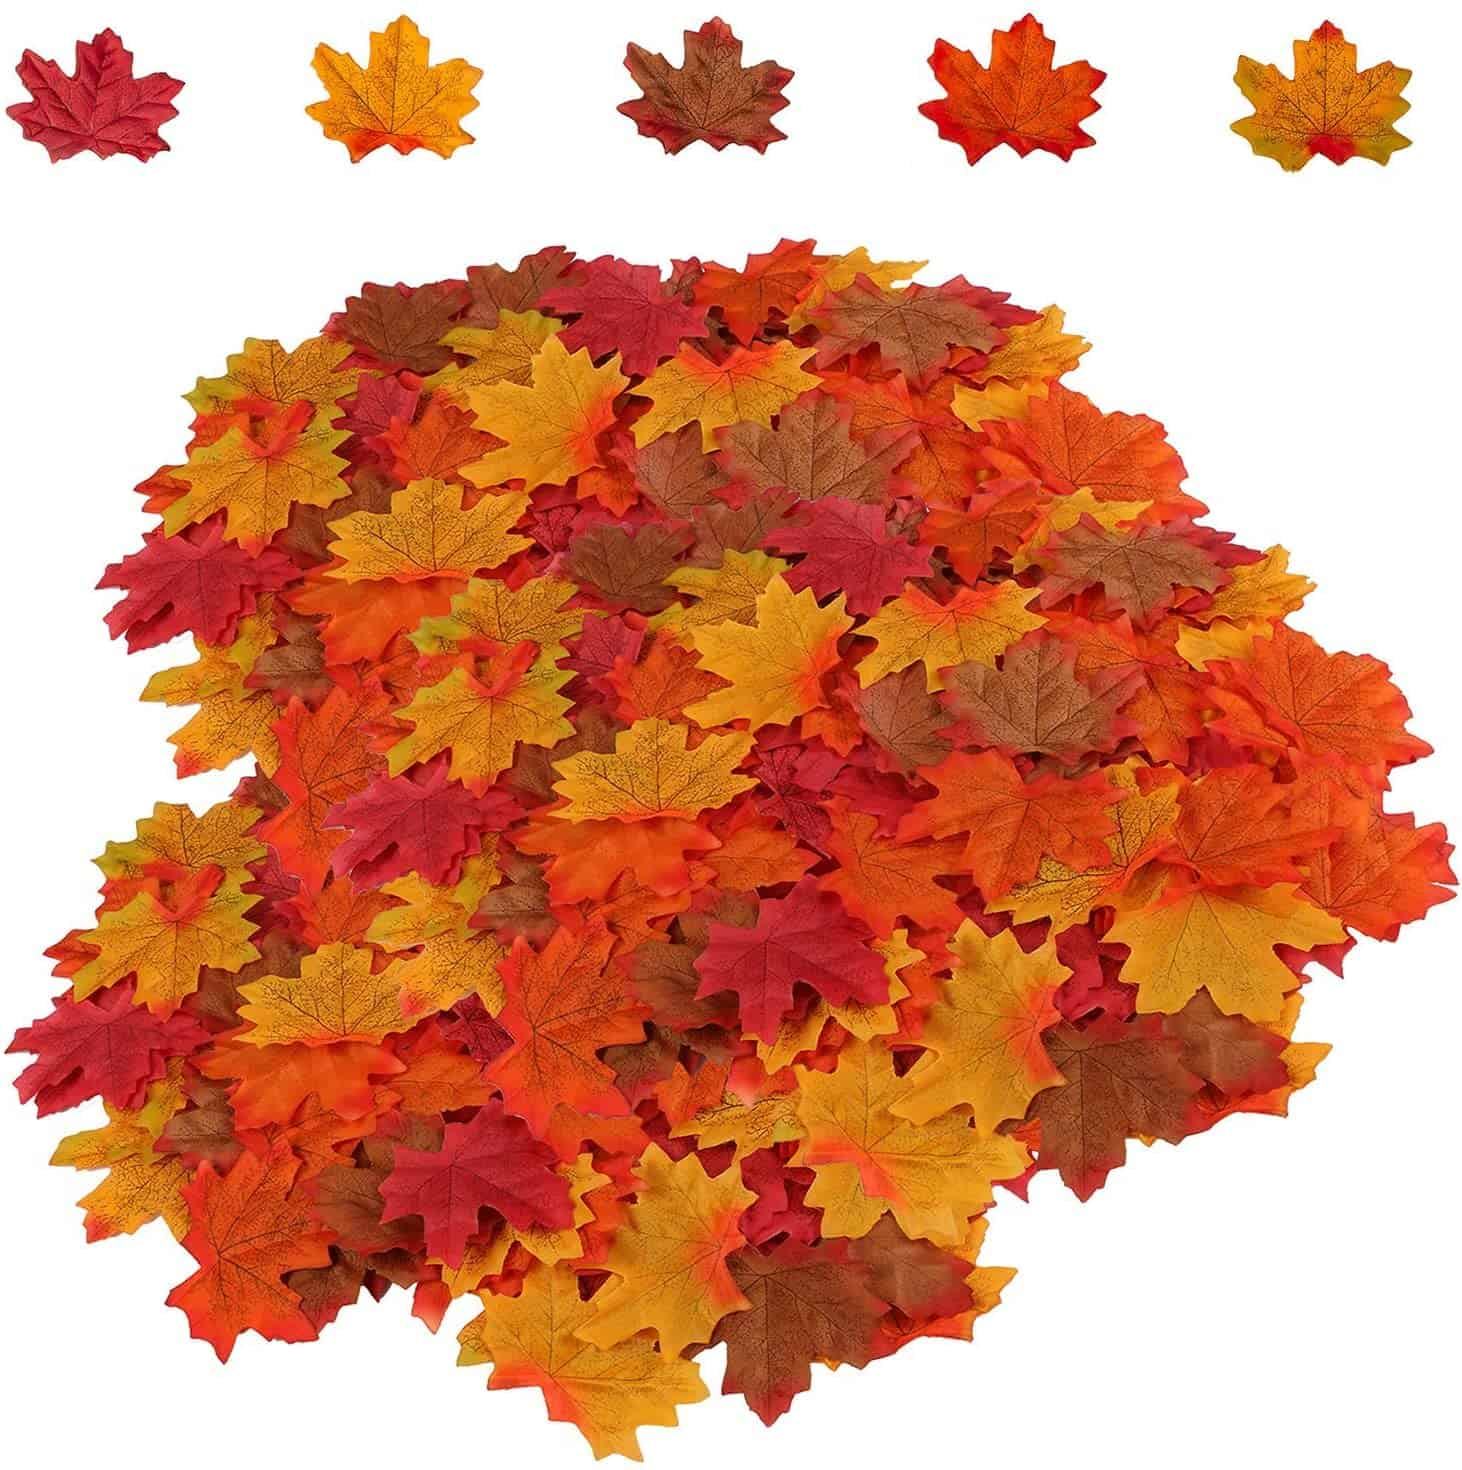 Artificial Maple Leaves 5 Assorted Mixed Fake Fall Maple Leaf Lifelike Looking Silk Autumn Leaf Garland